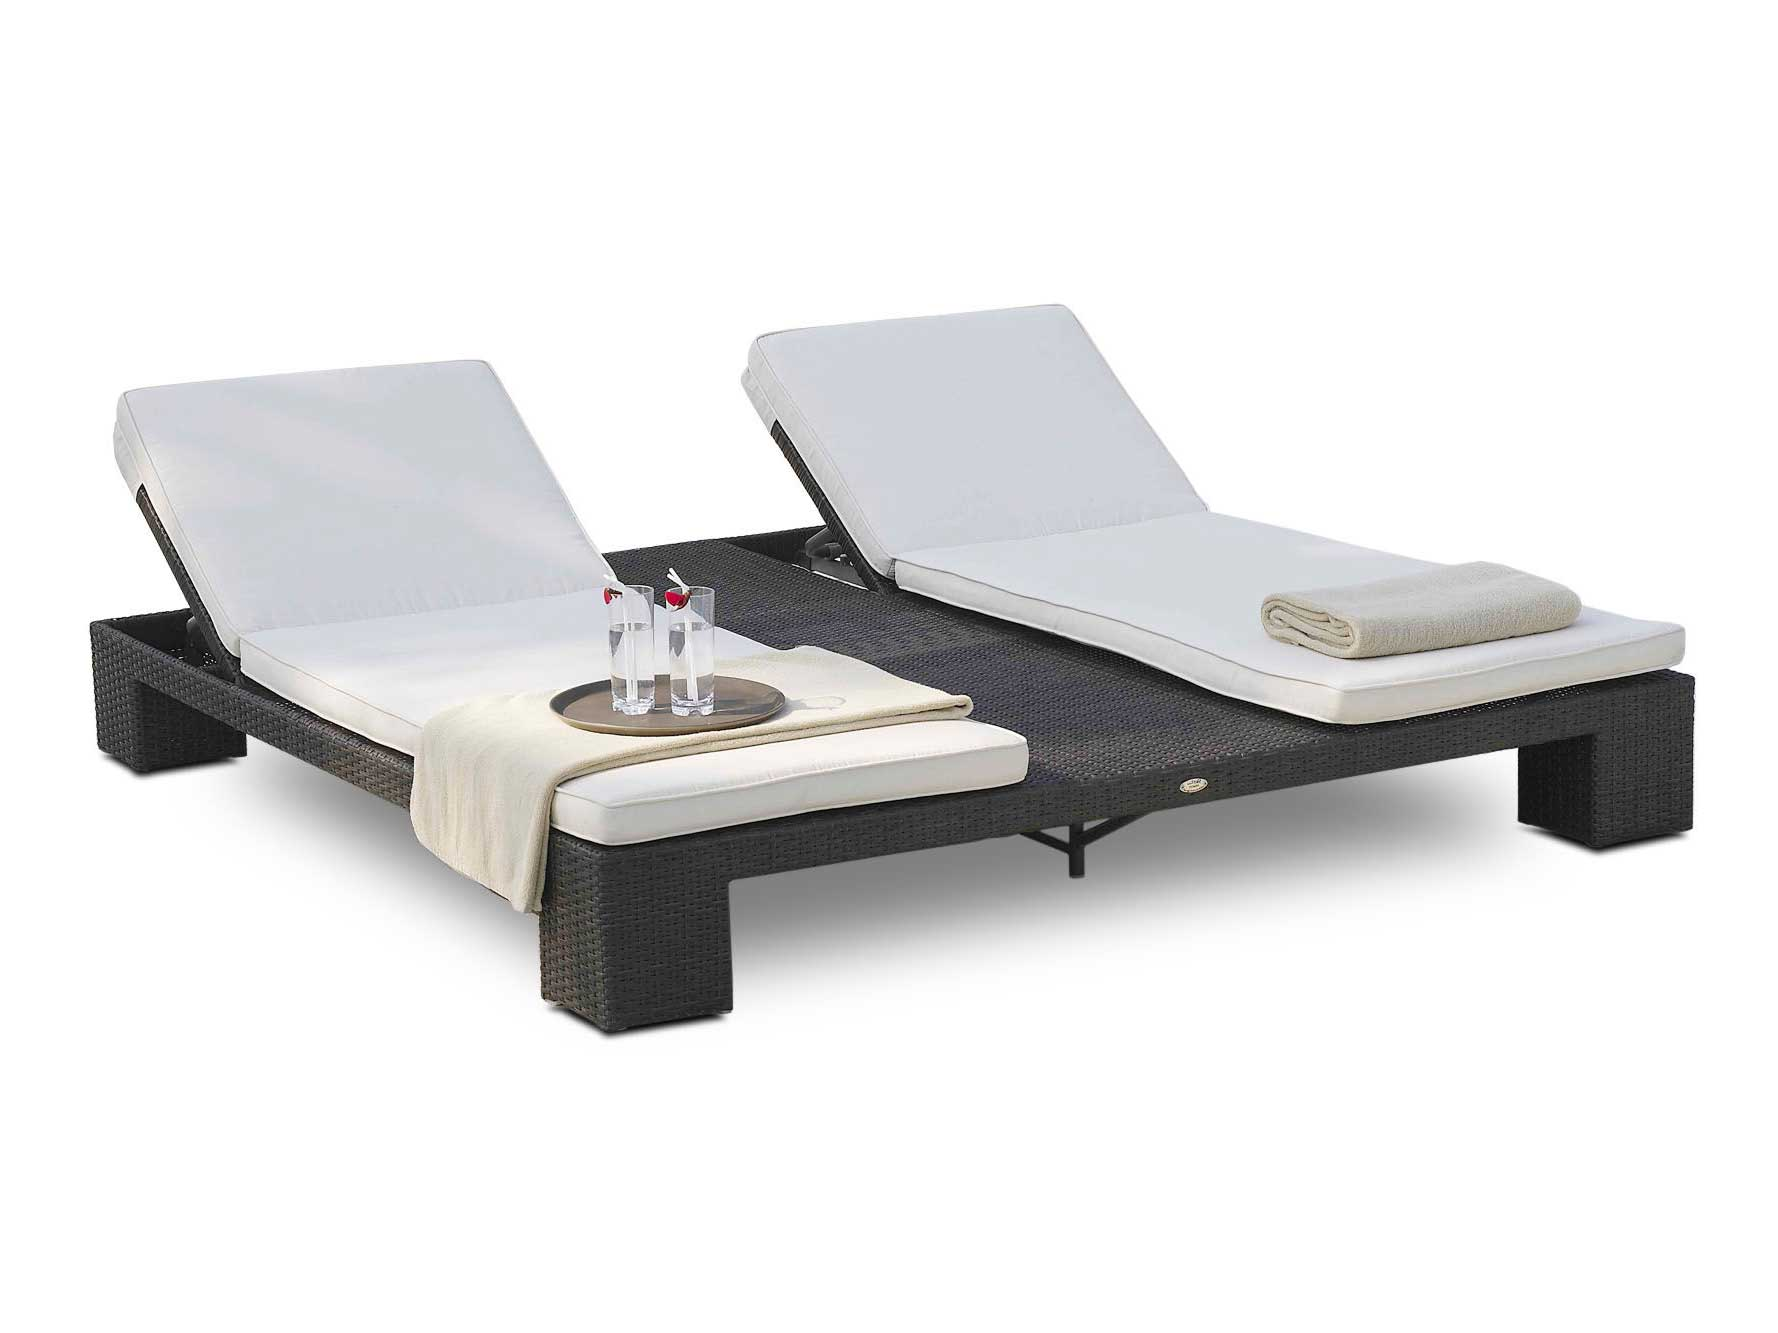 double bain de soleil de jardin relaxation sunny de lusso 6043. Black Bedroom Furniture Sets. Home Design Ideas